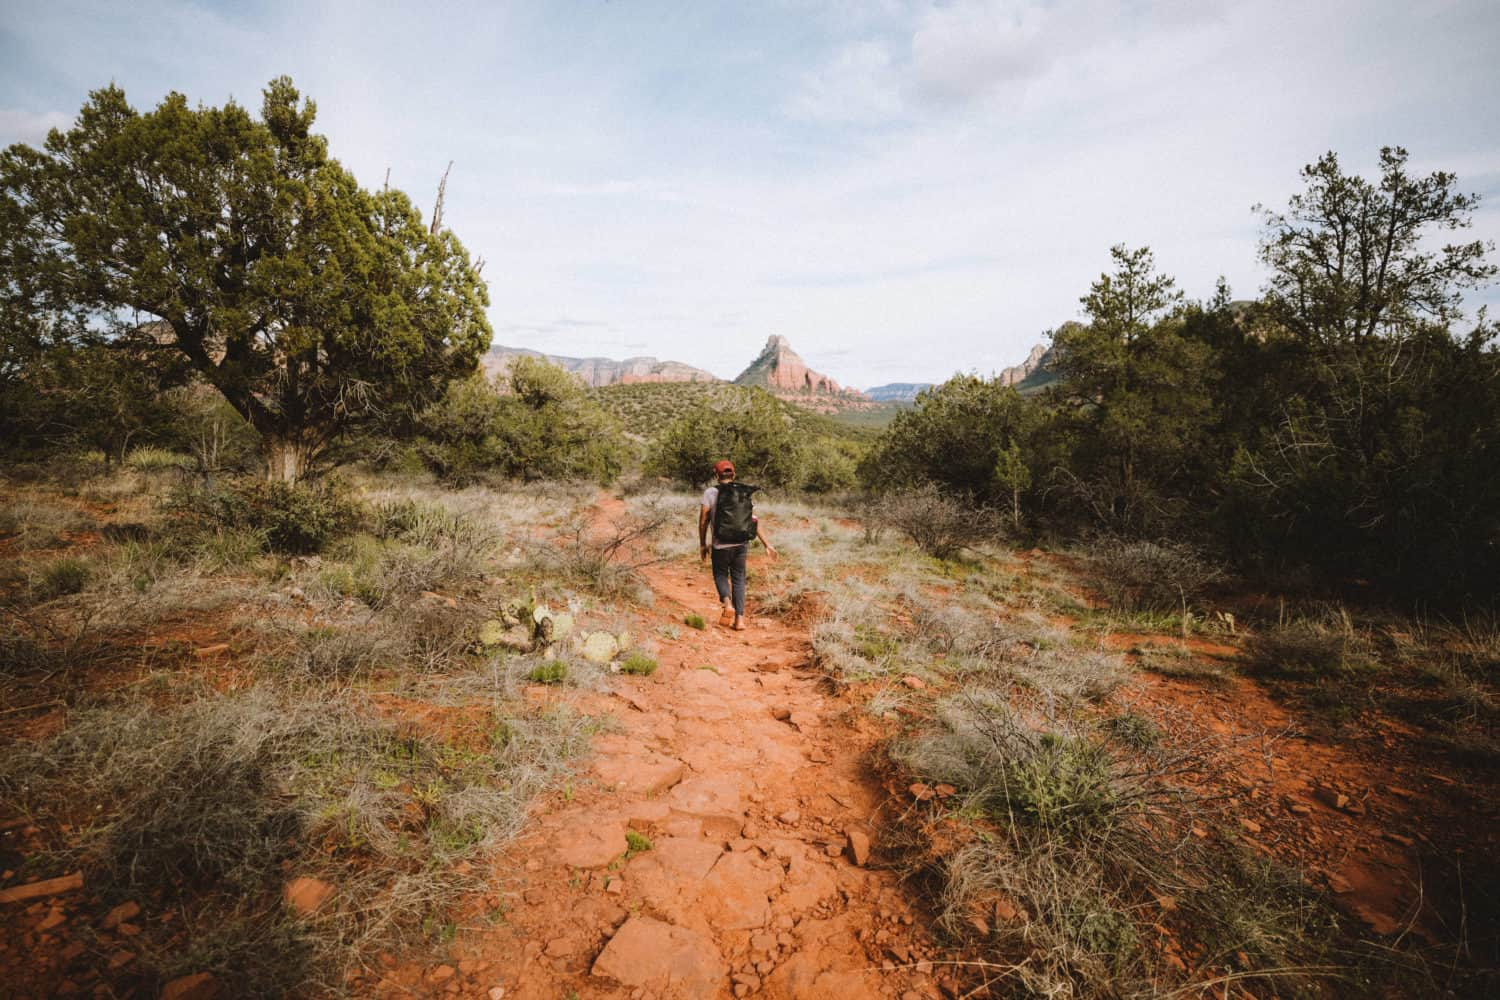 Berty on rock Birthing Cave trail in Sedona